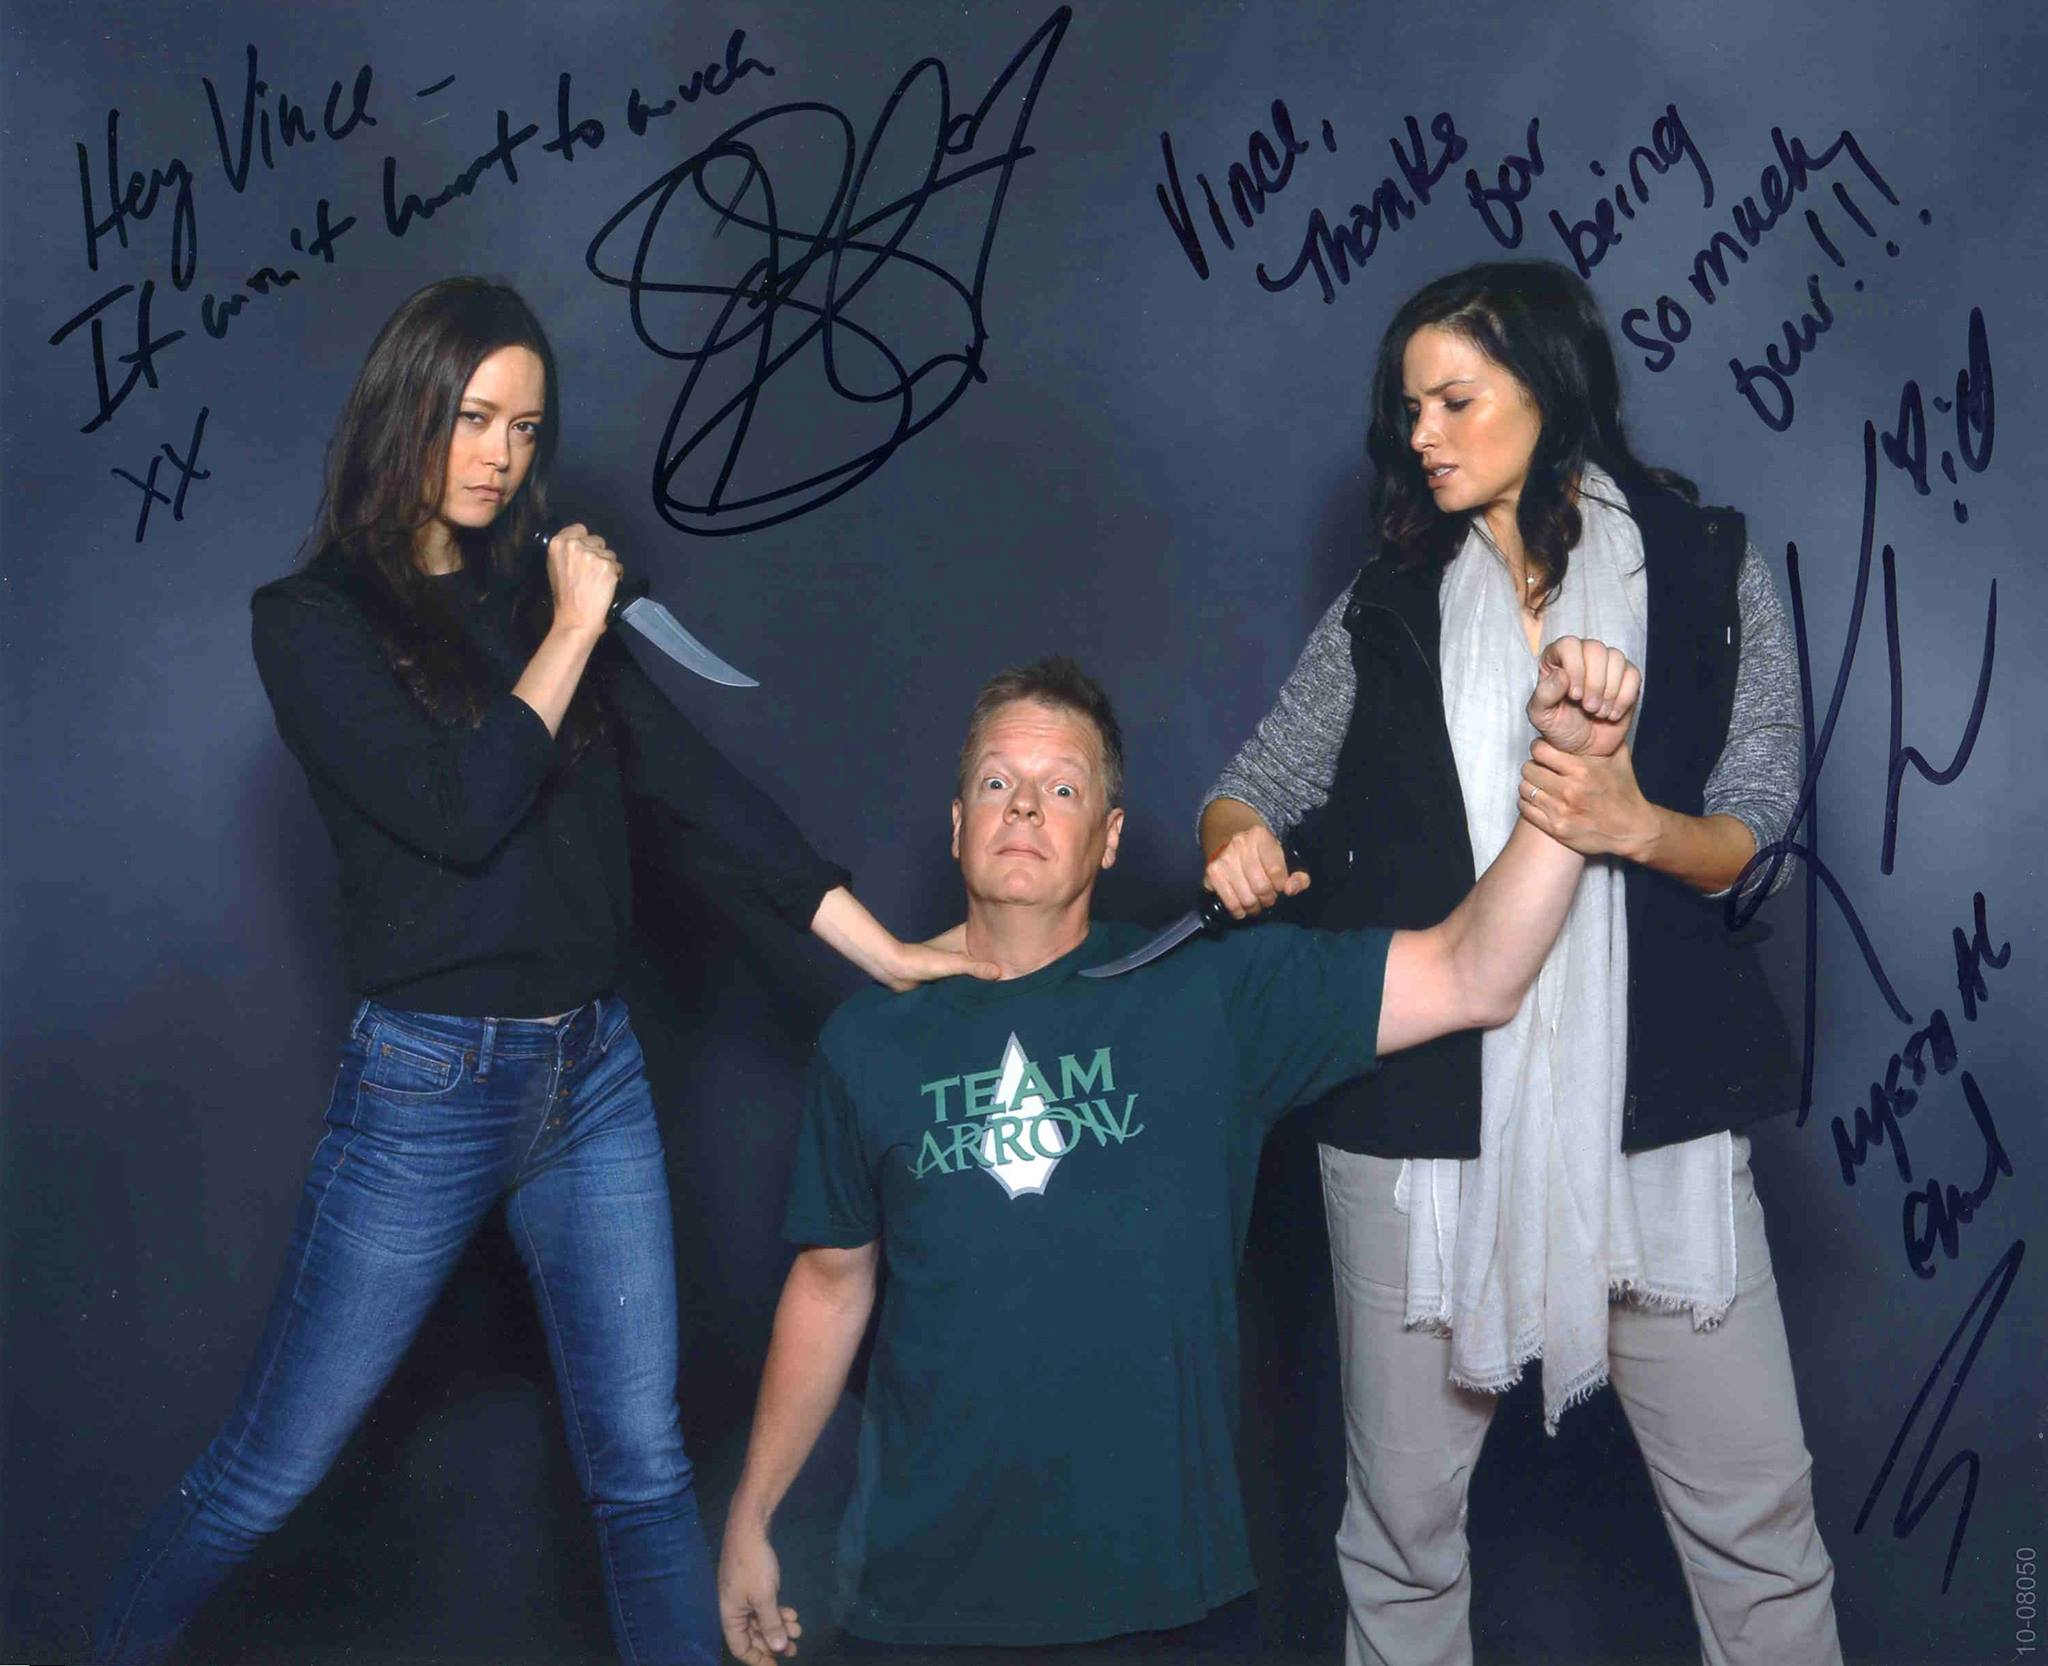 Got this photo with two of the bad girls from Arrow attacking me for being Team Arrow .